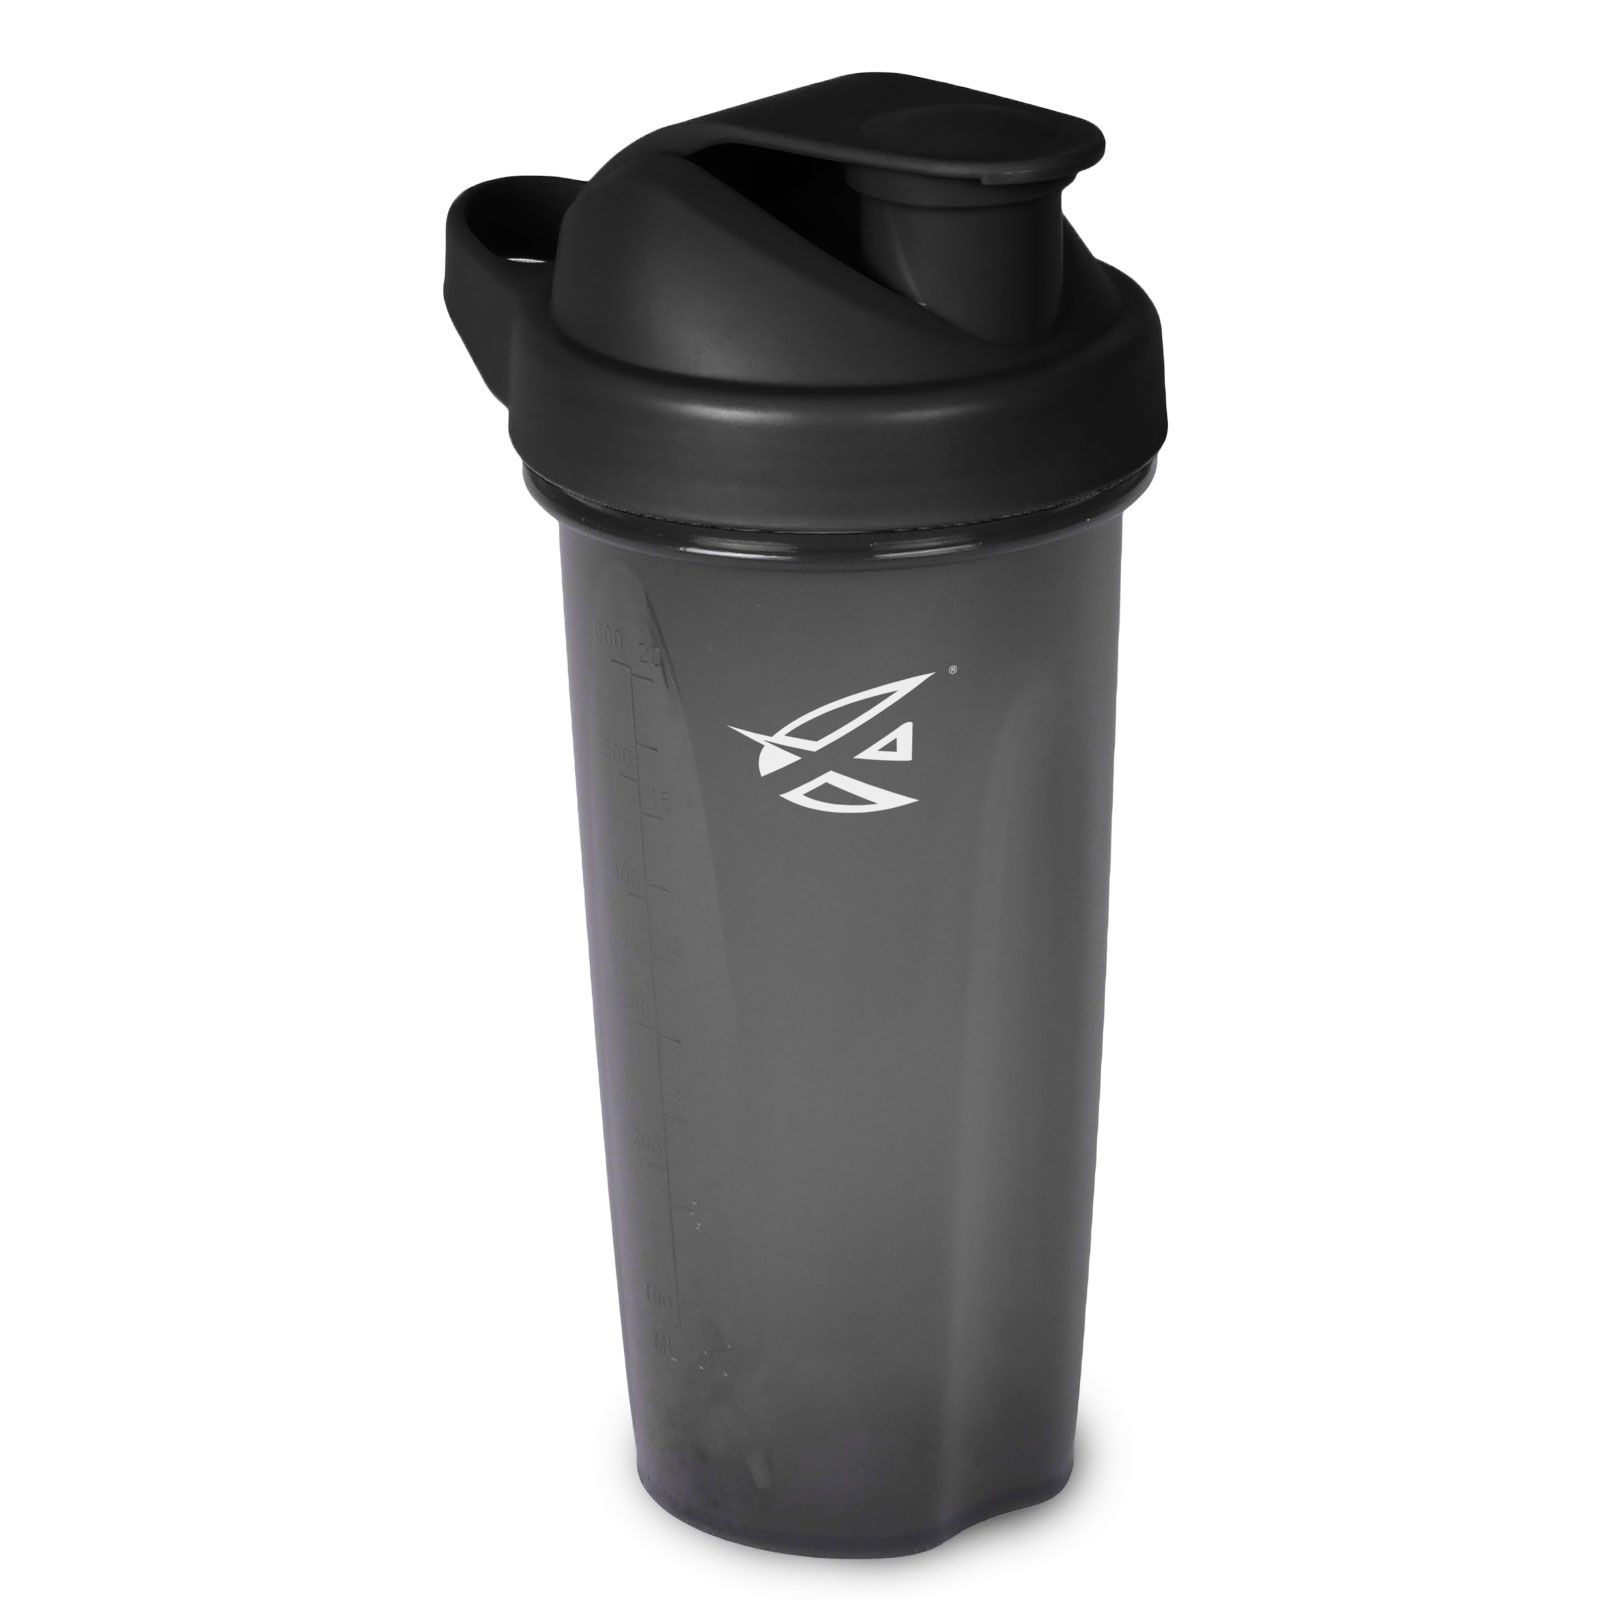 Protein Shaker Lid: Large Image